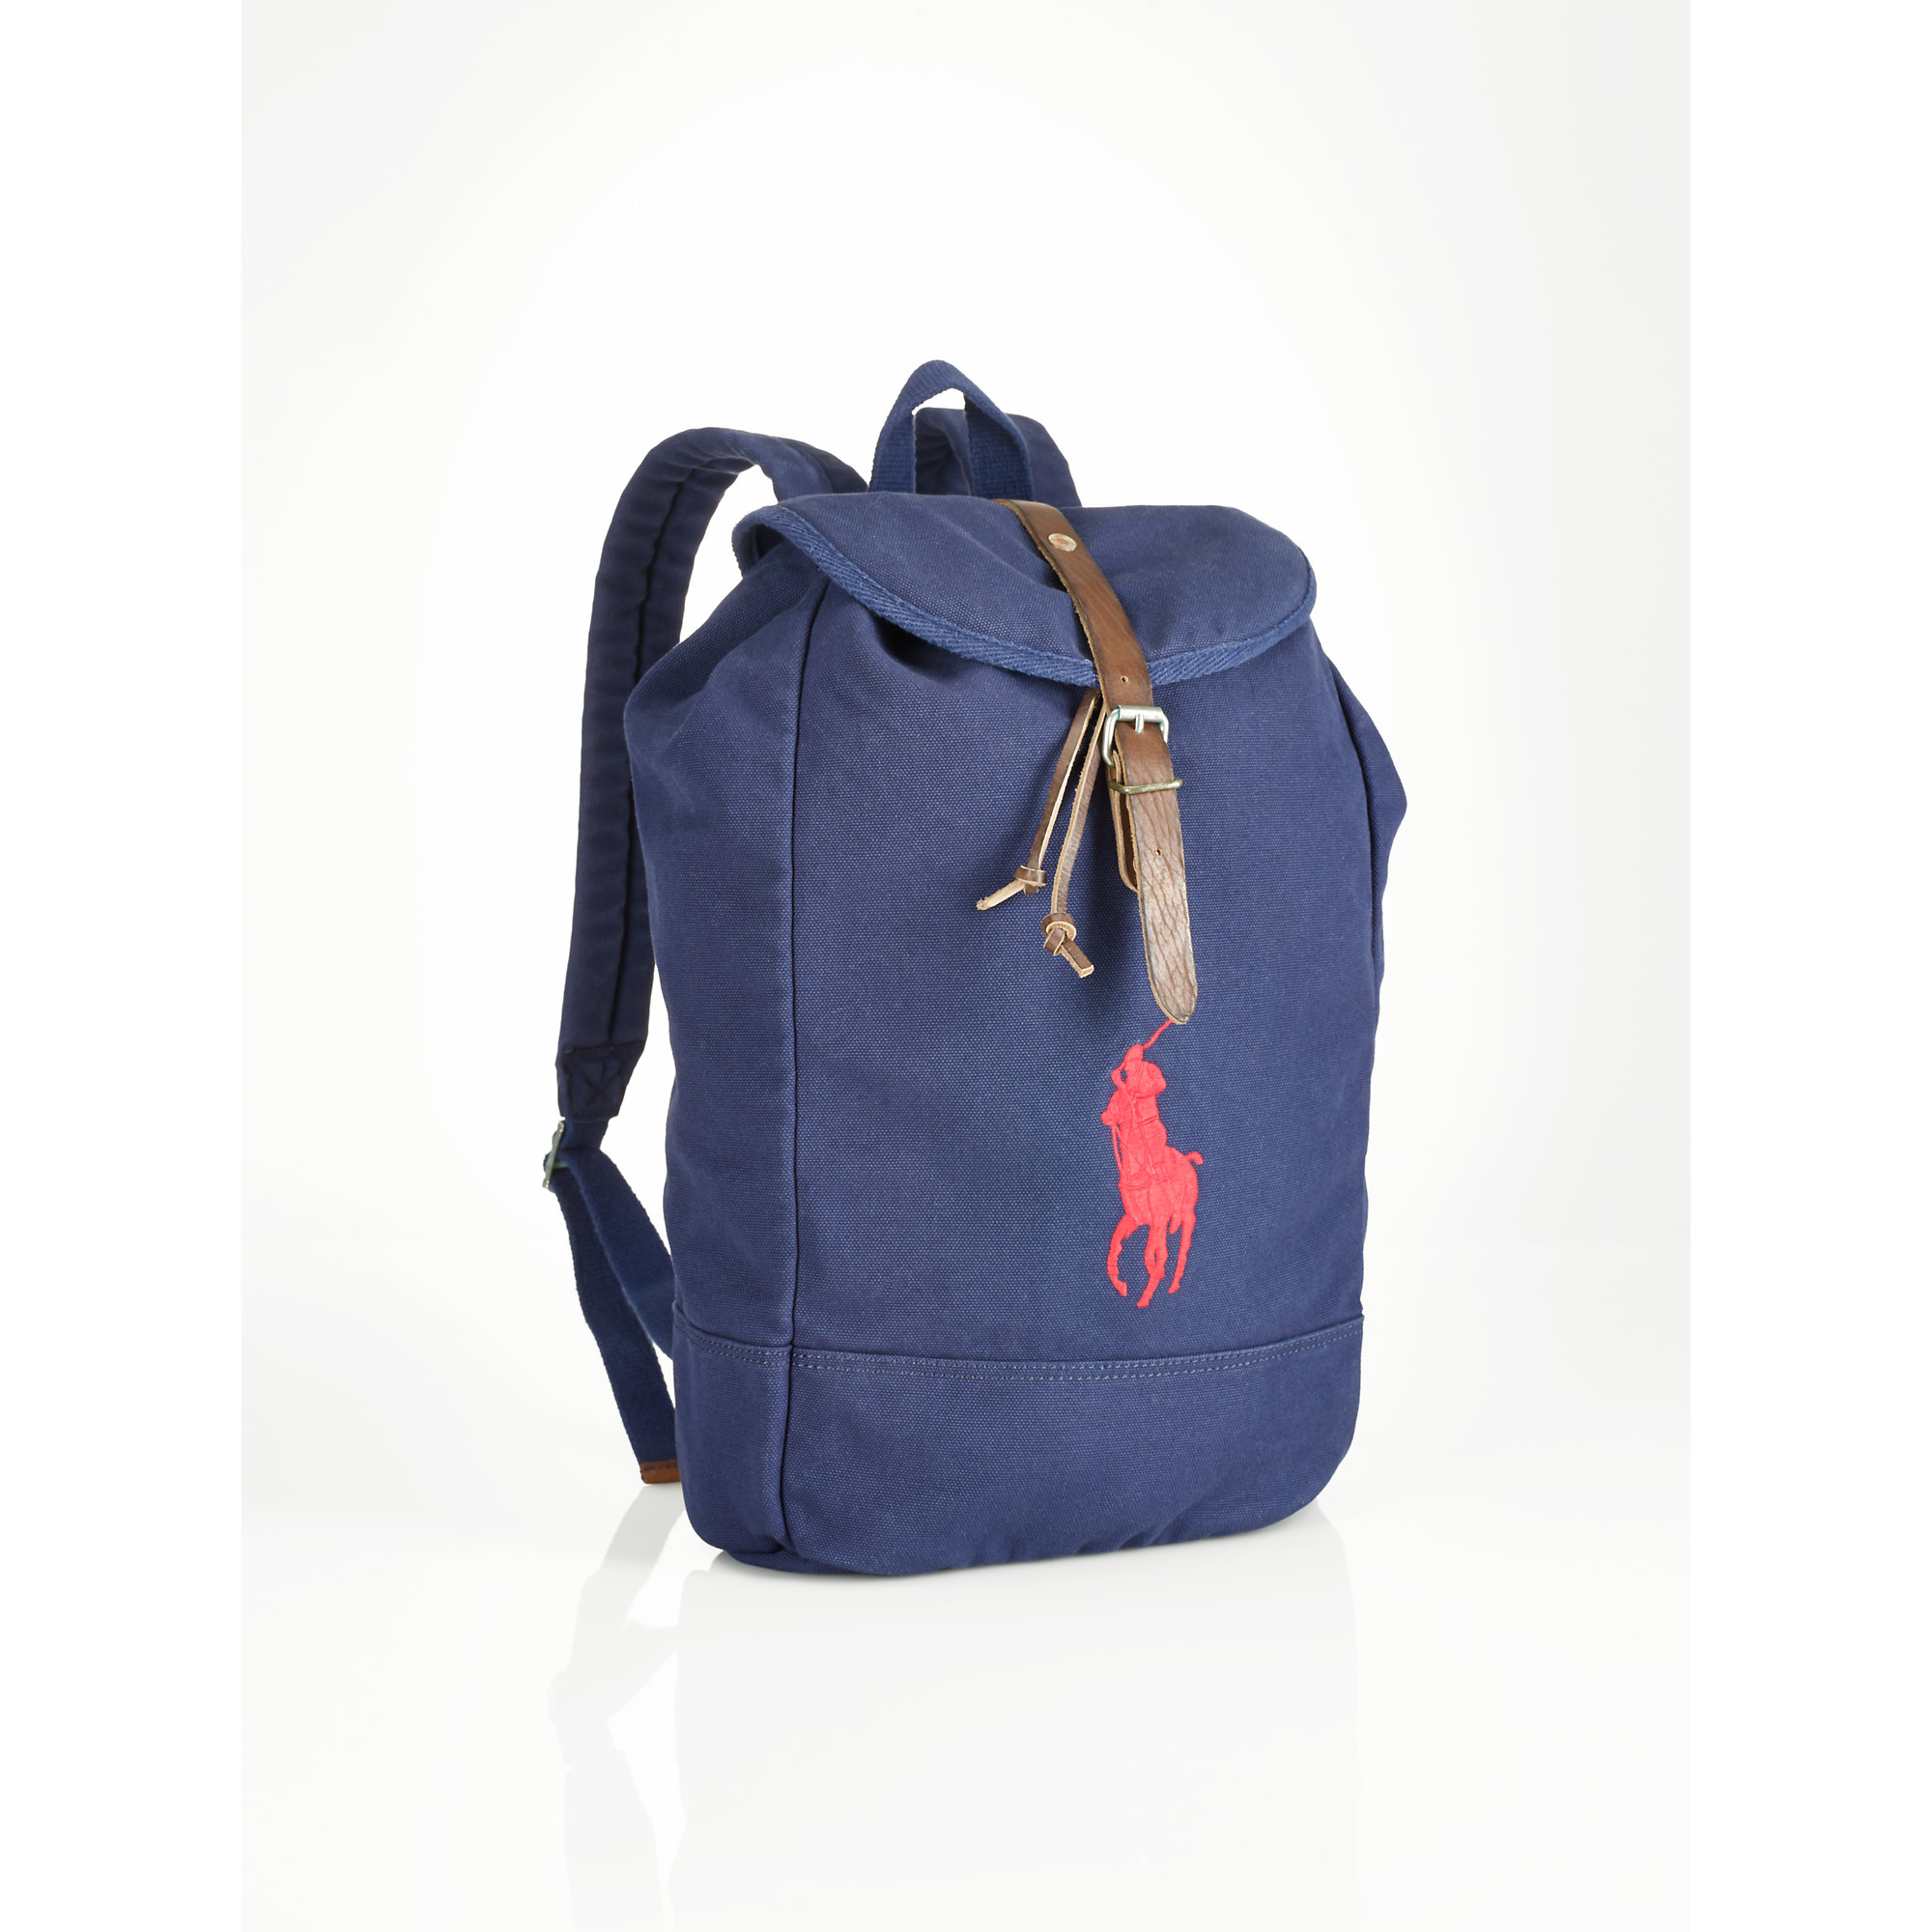 1506f056a4d2 Lyst - Polo Ralph Lauren Big Pony Backpack in Blue for Men